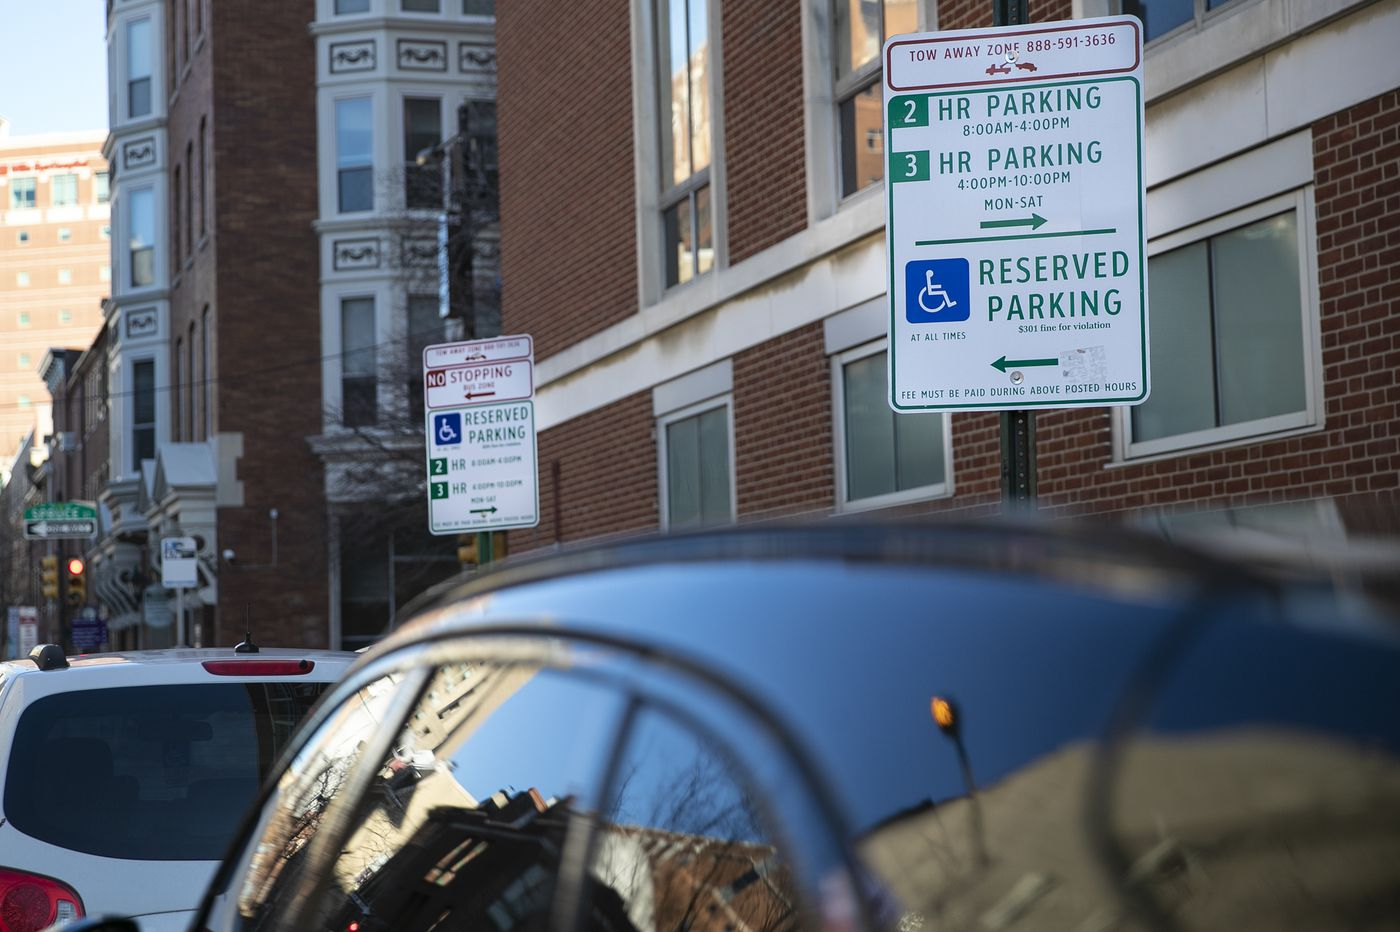 The Philadelphia Parking Authority has relocated spaces for disabled drivers across the city. Here's why.